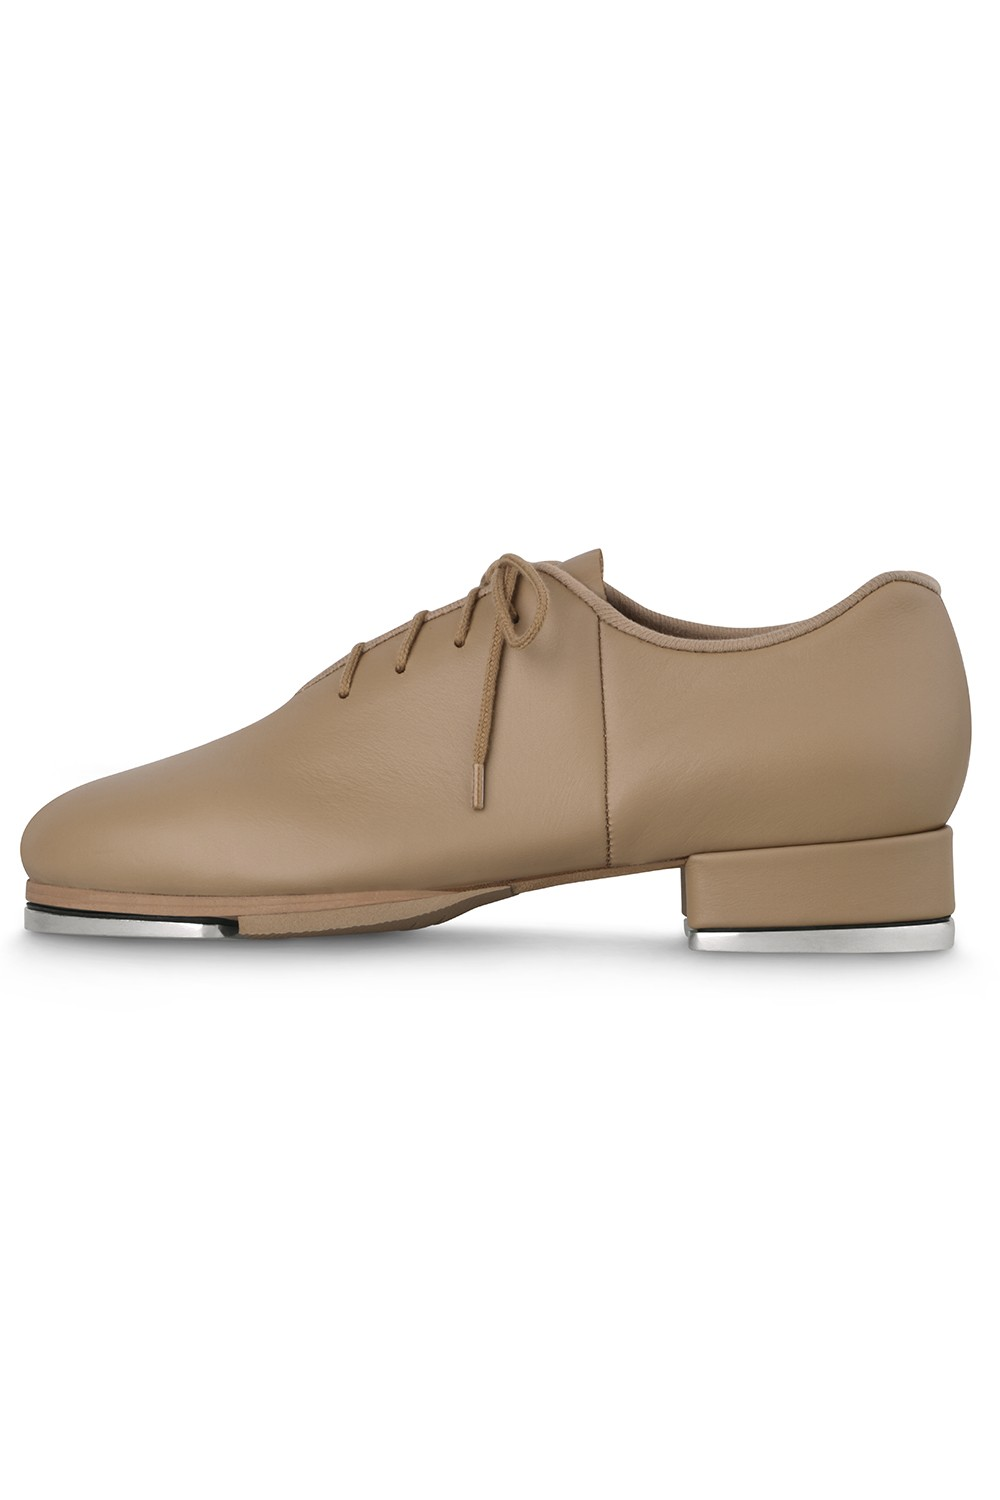 Sapato De Sapateado Sync Women's Tap Shoes